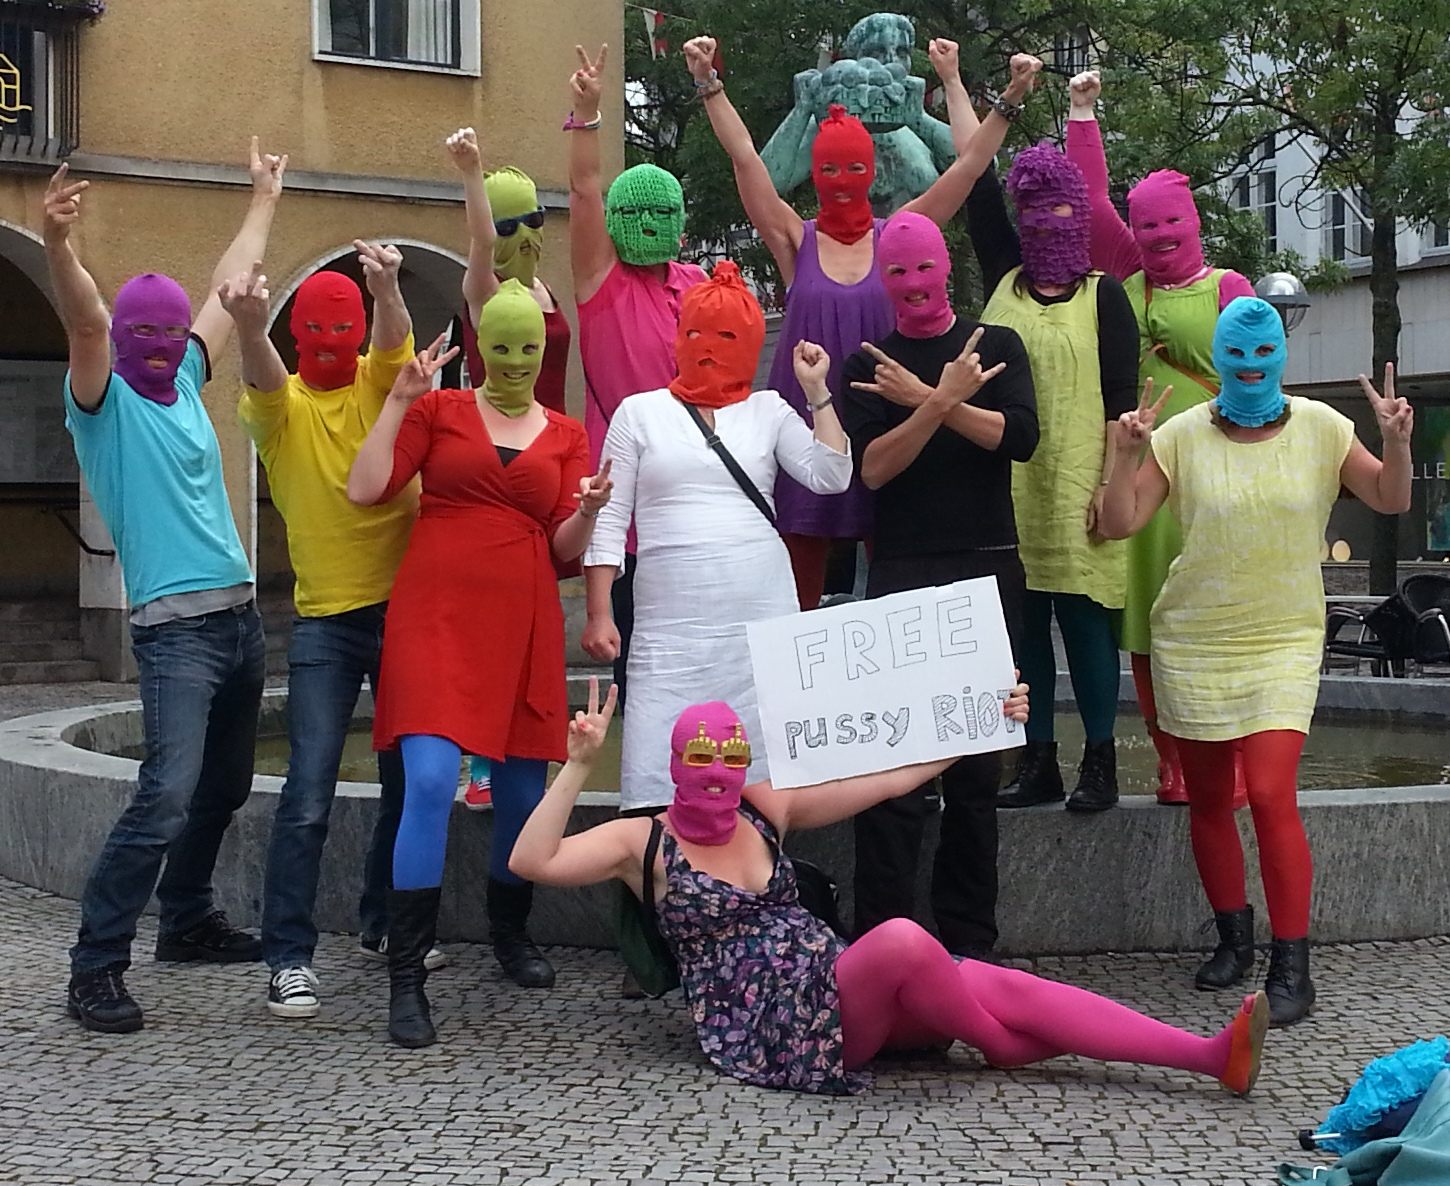 Sønderborg actions of solidarity with Pussy Riot